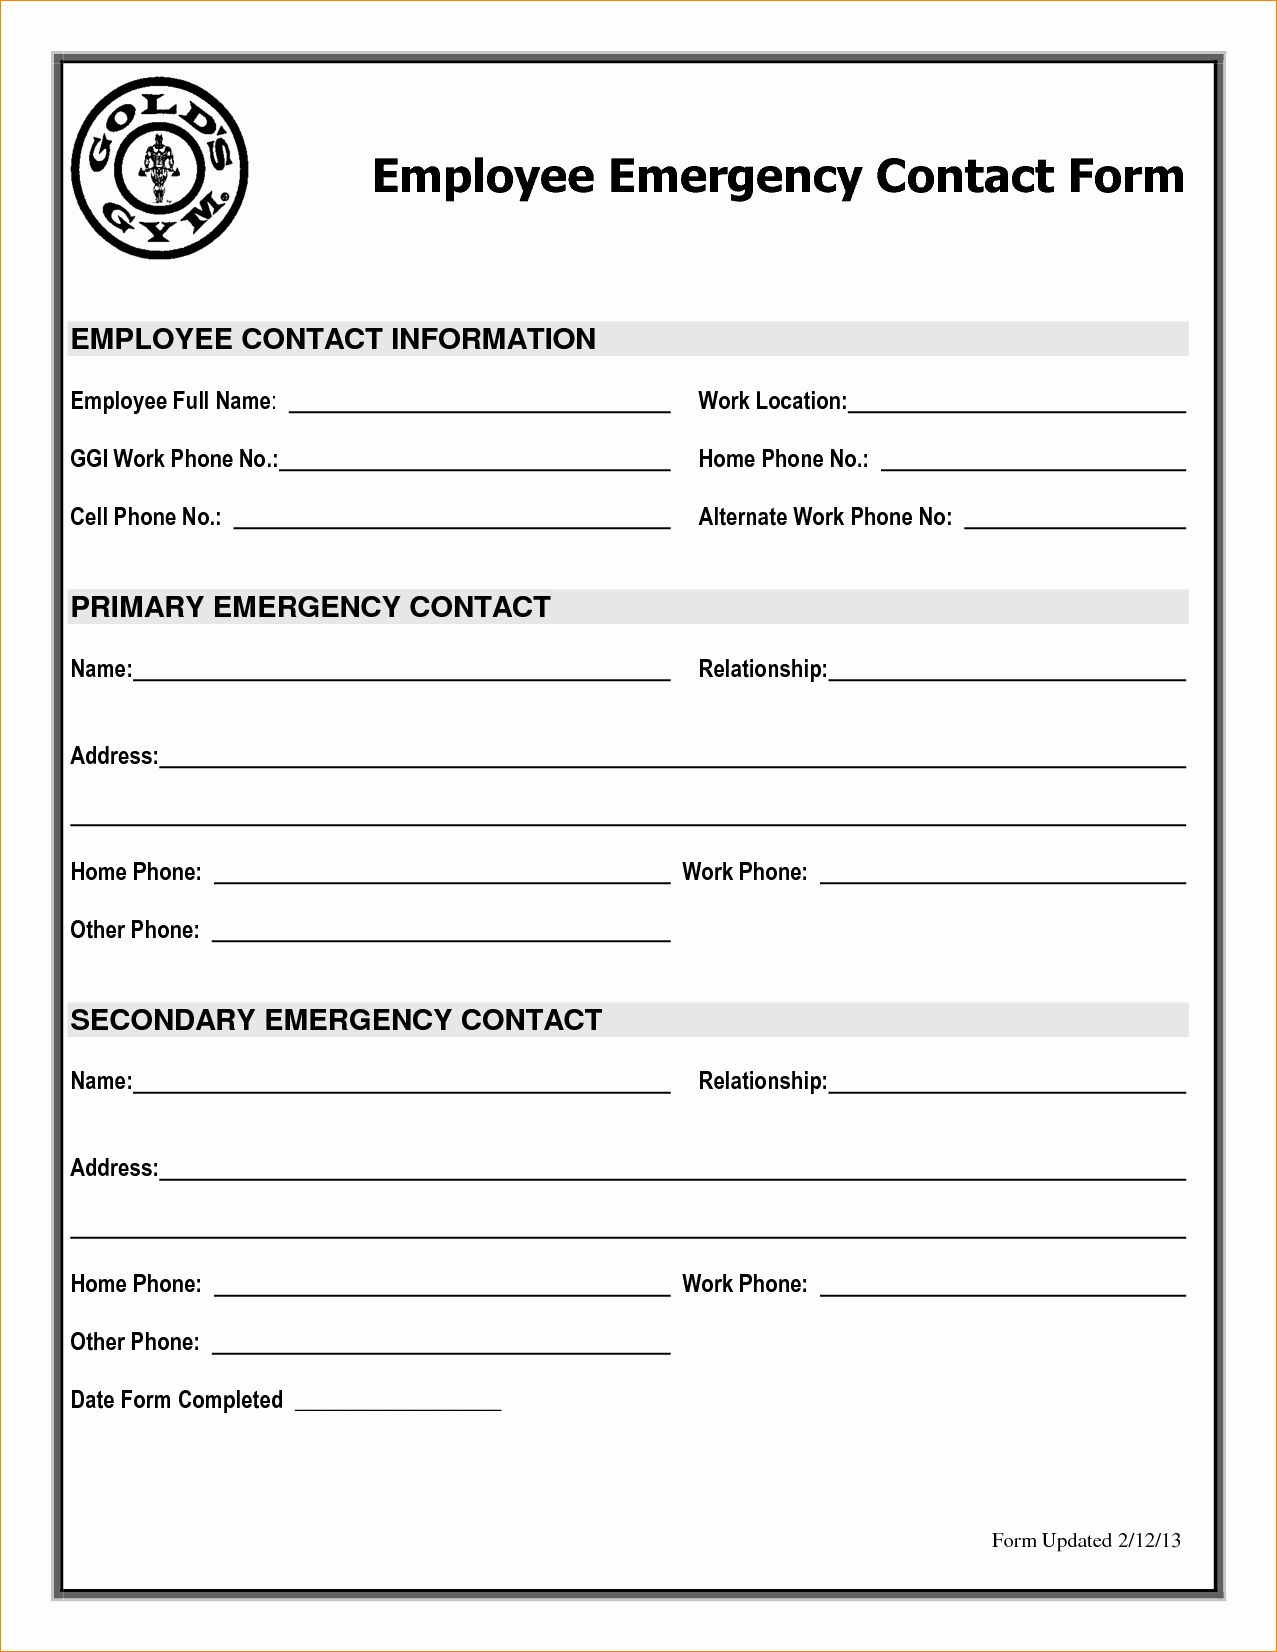 Employee Emergency Contact Form Template Beautiful Employee Emergency Contact Printable Form To Pin Emergency Contact Form Contact Card Template Contact Card